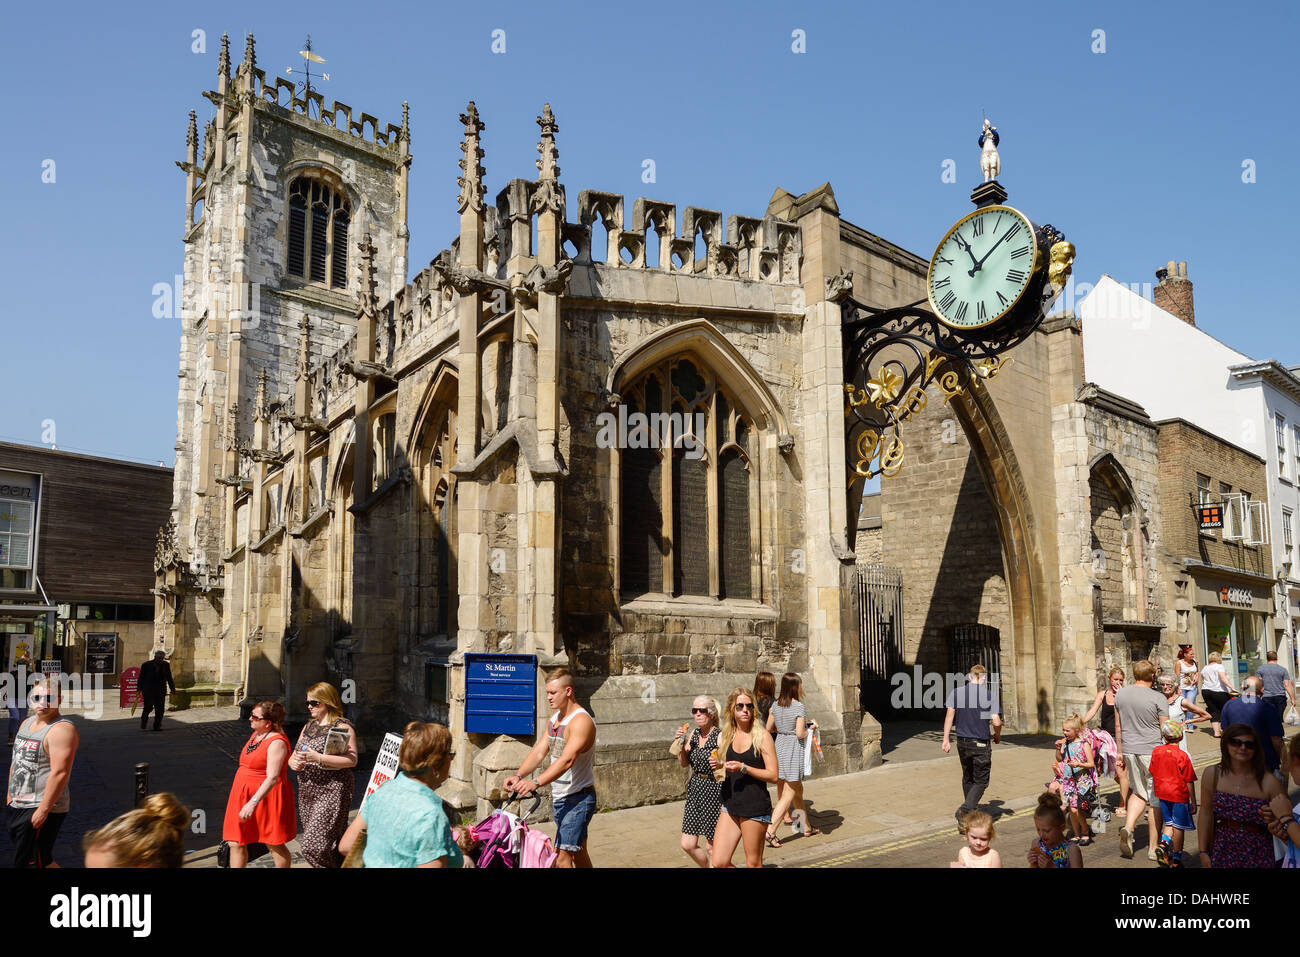 St Martin le Grand church on Coney Street in York city centre UK - Stock Image